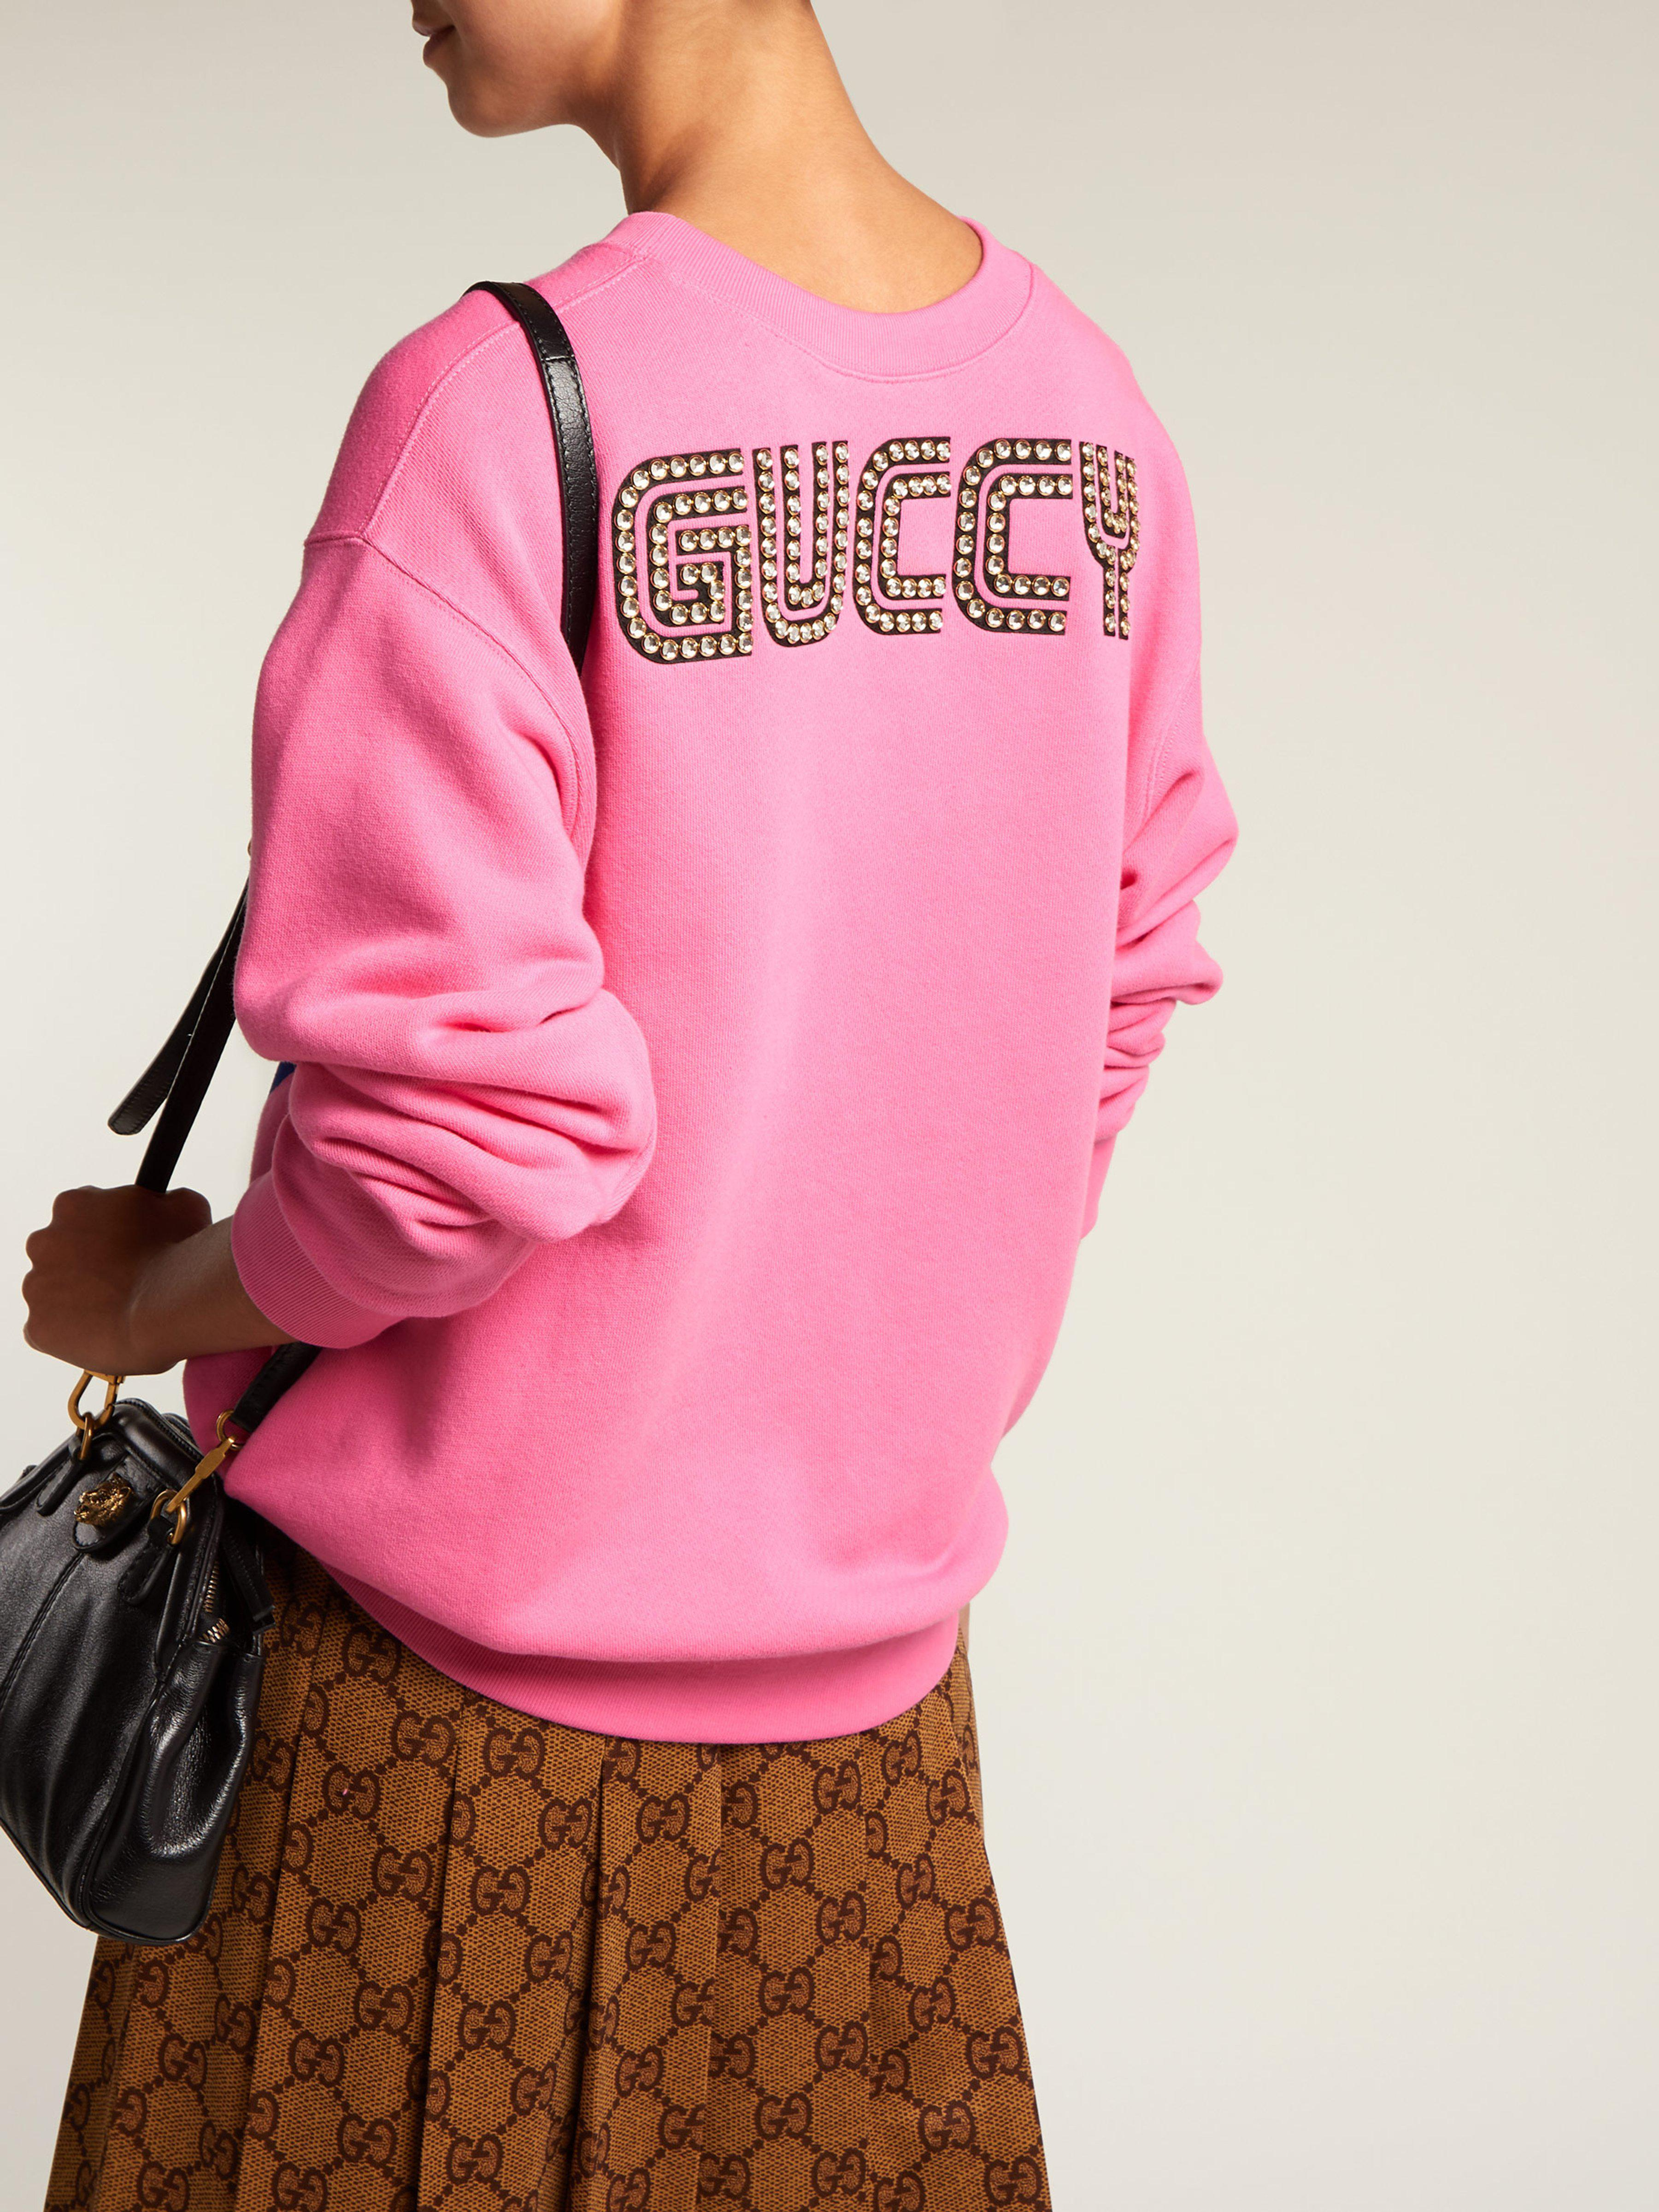 e729f1240bb Gucci Oversized Boston Terrier Sweatshirt in Pink - Save 25% - Lyst